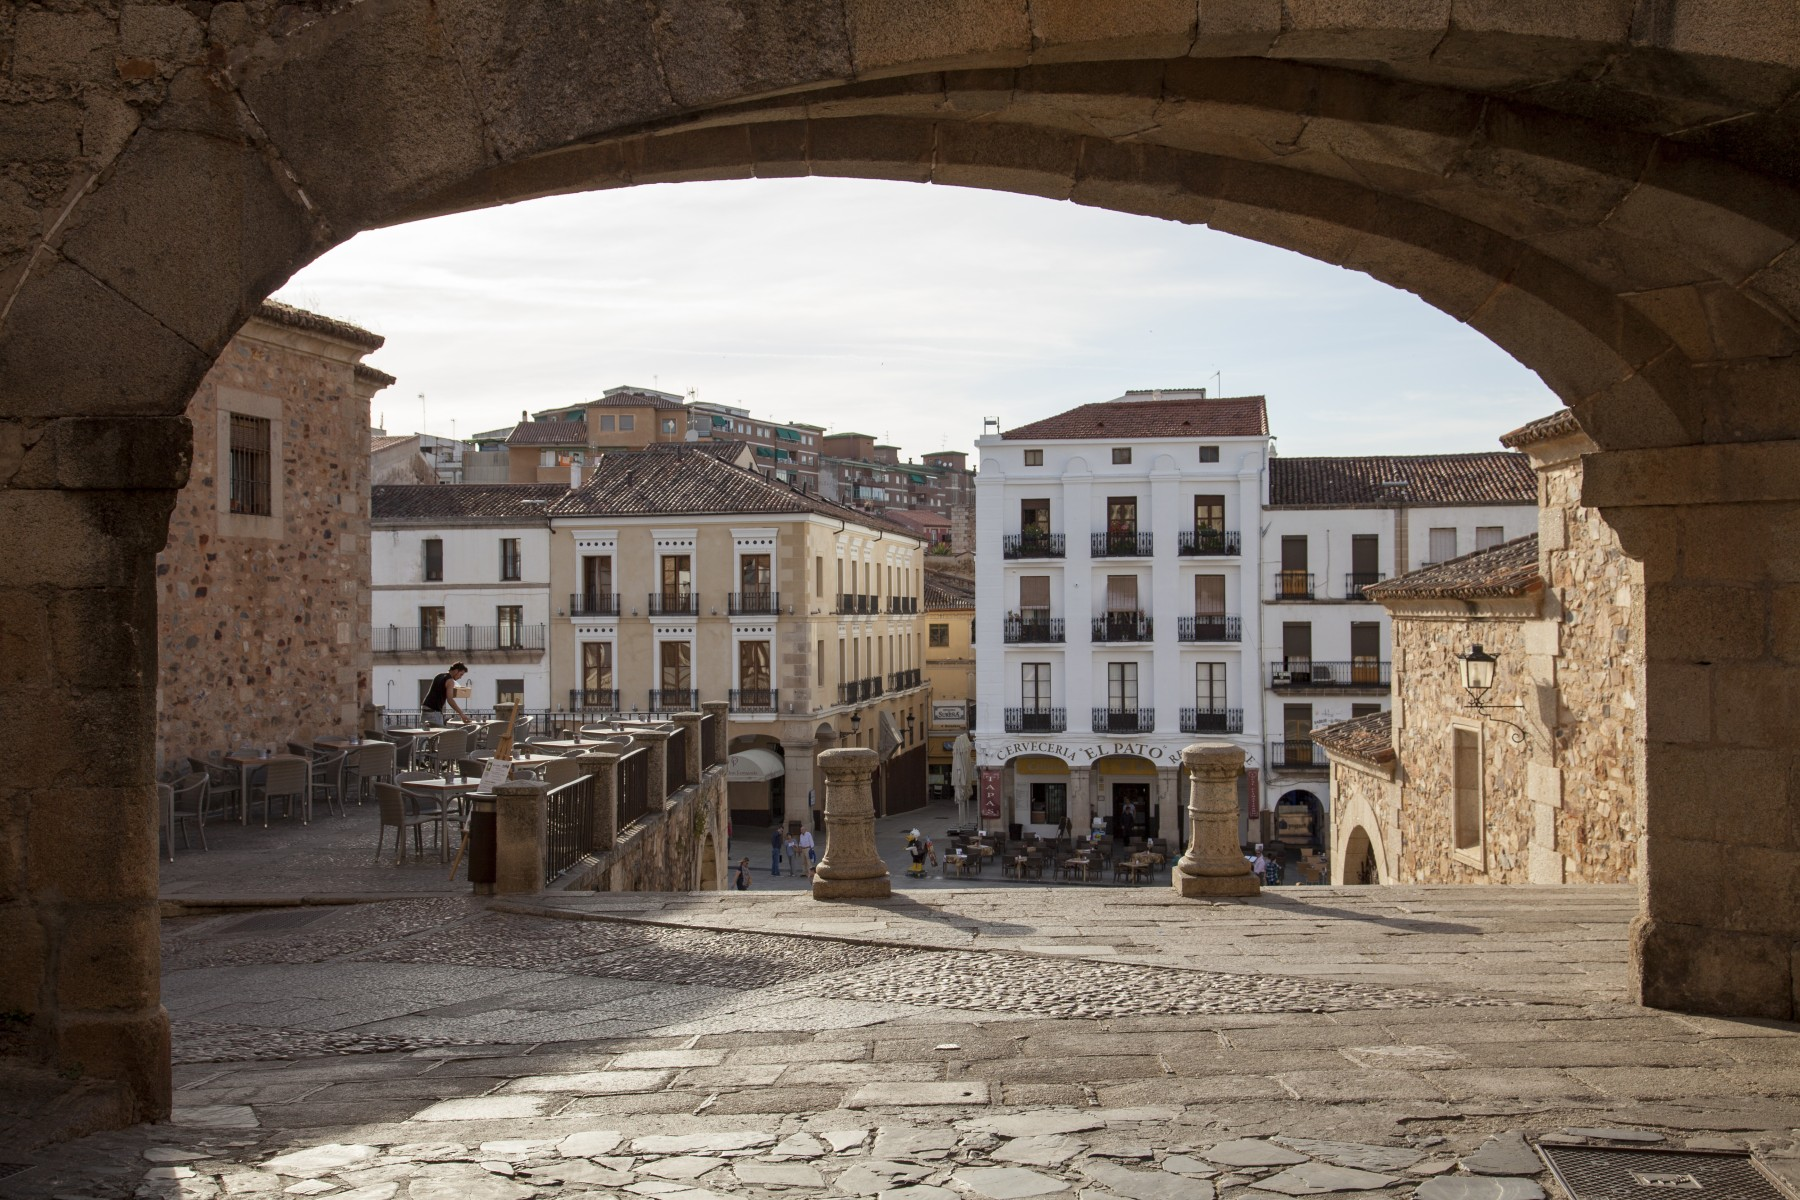 Caceres (arch of la estrela on plaza mayor)